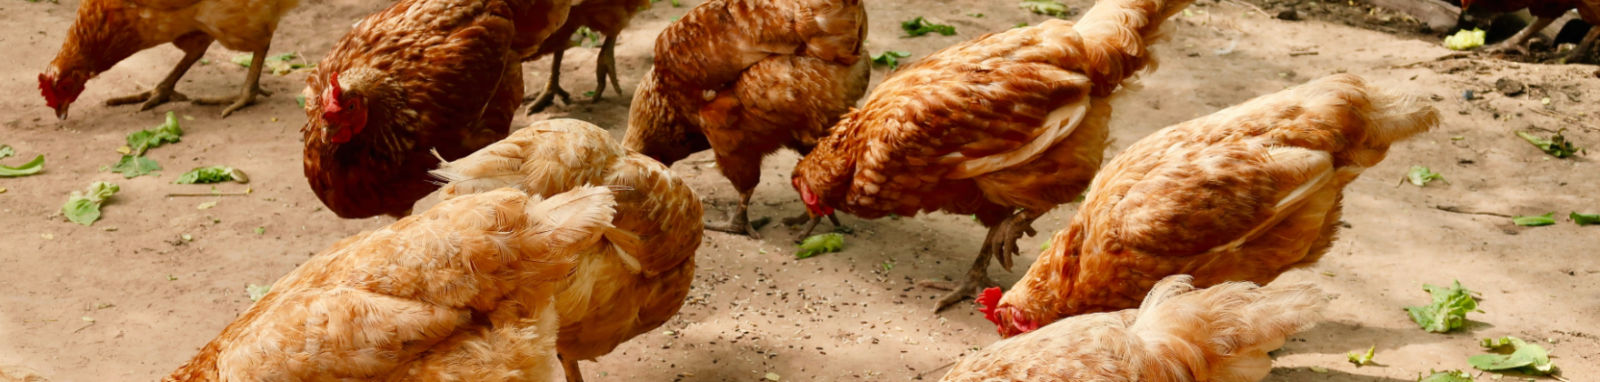 chickens eating greens scattered on ground